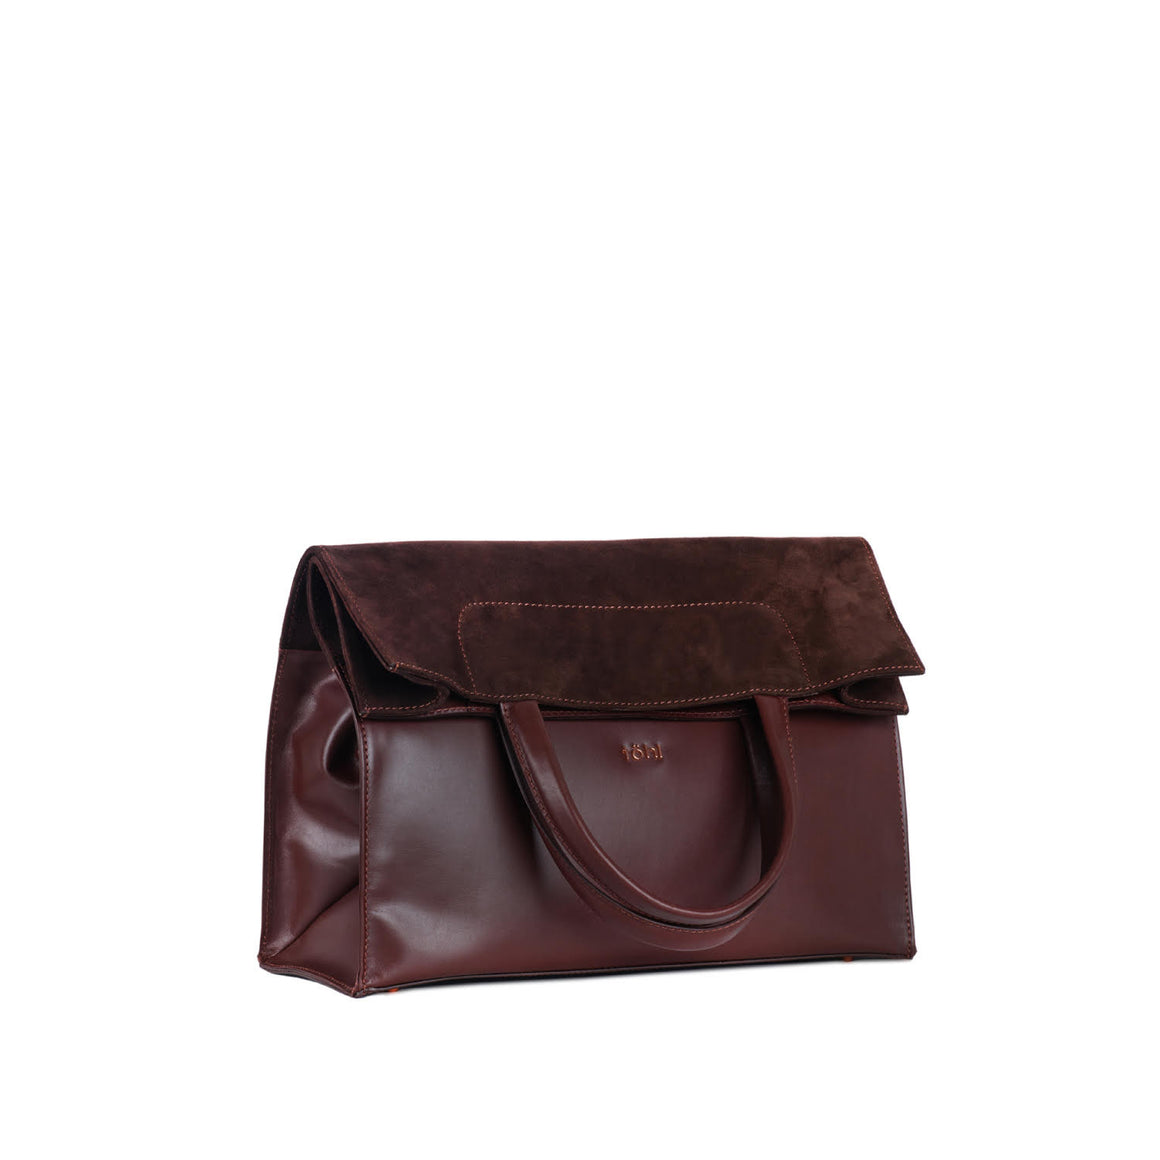 TT 0004 - TOHL TERRY WOMEN'S HAND BAG - CHOCO